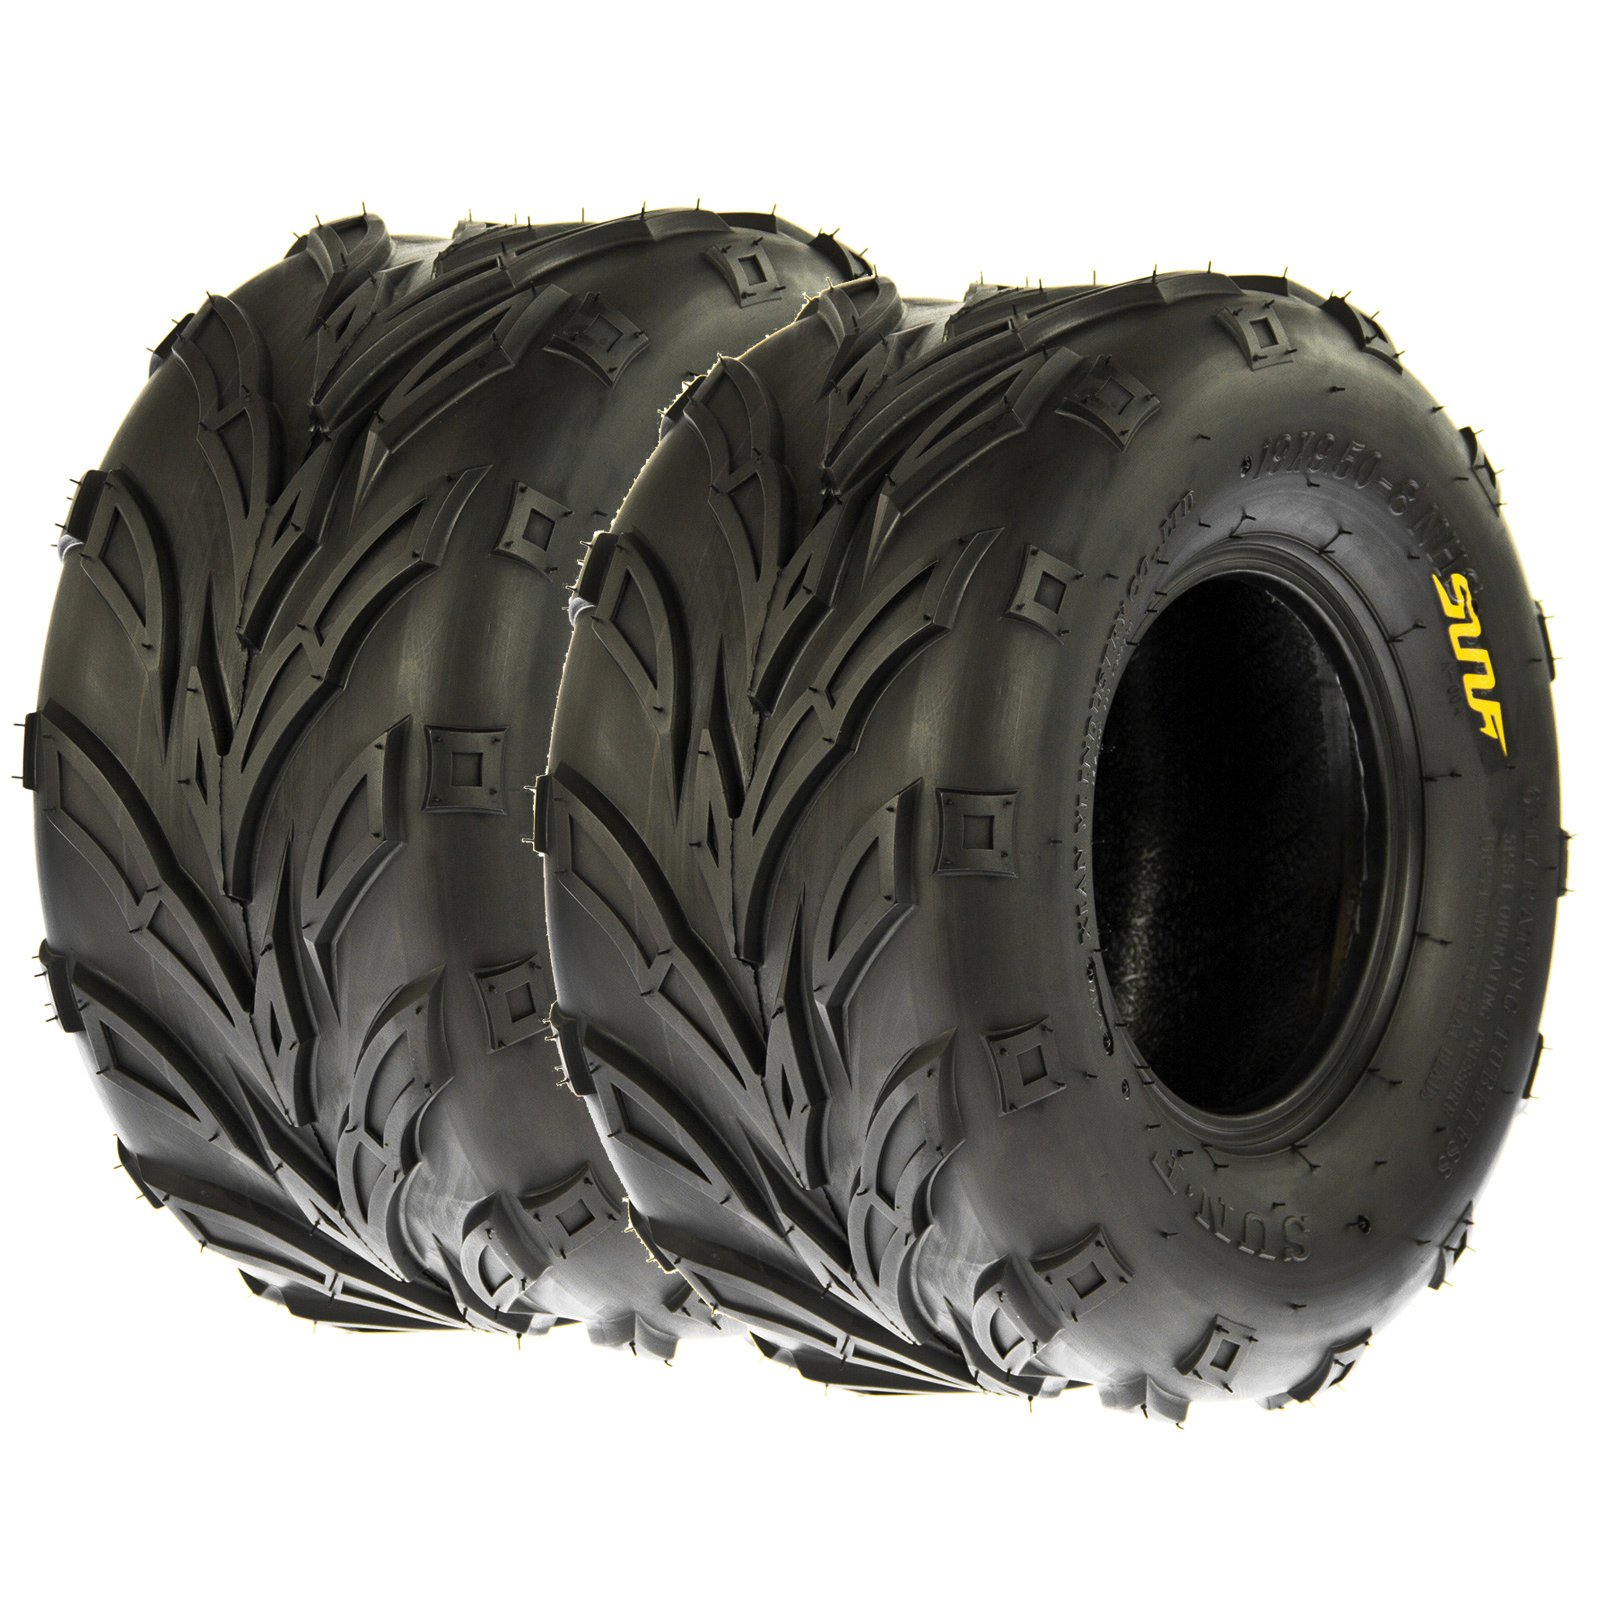 Set of 2 SunF A004 ATV Tire 22x10-10, 4 Ply